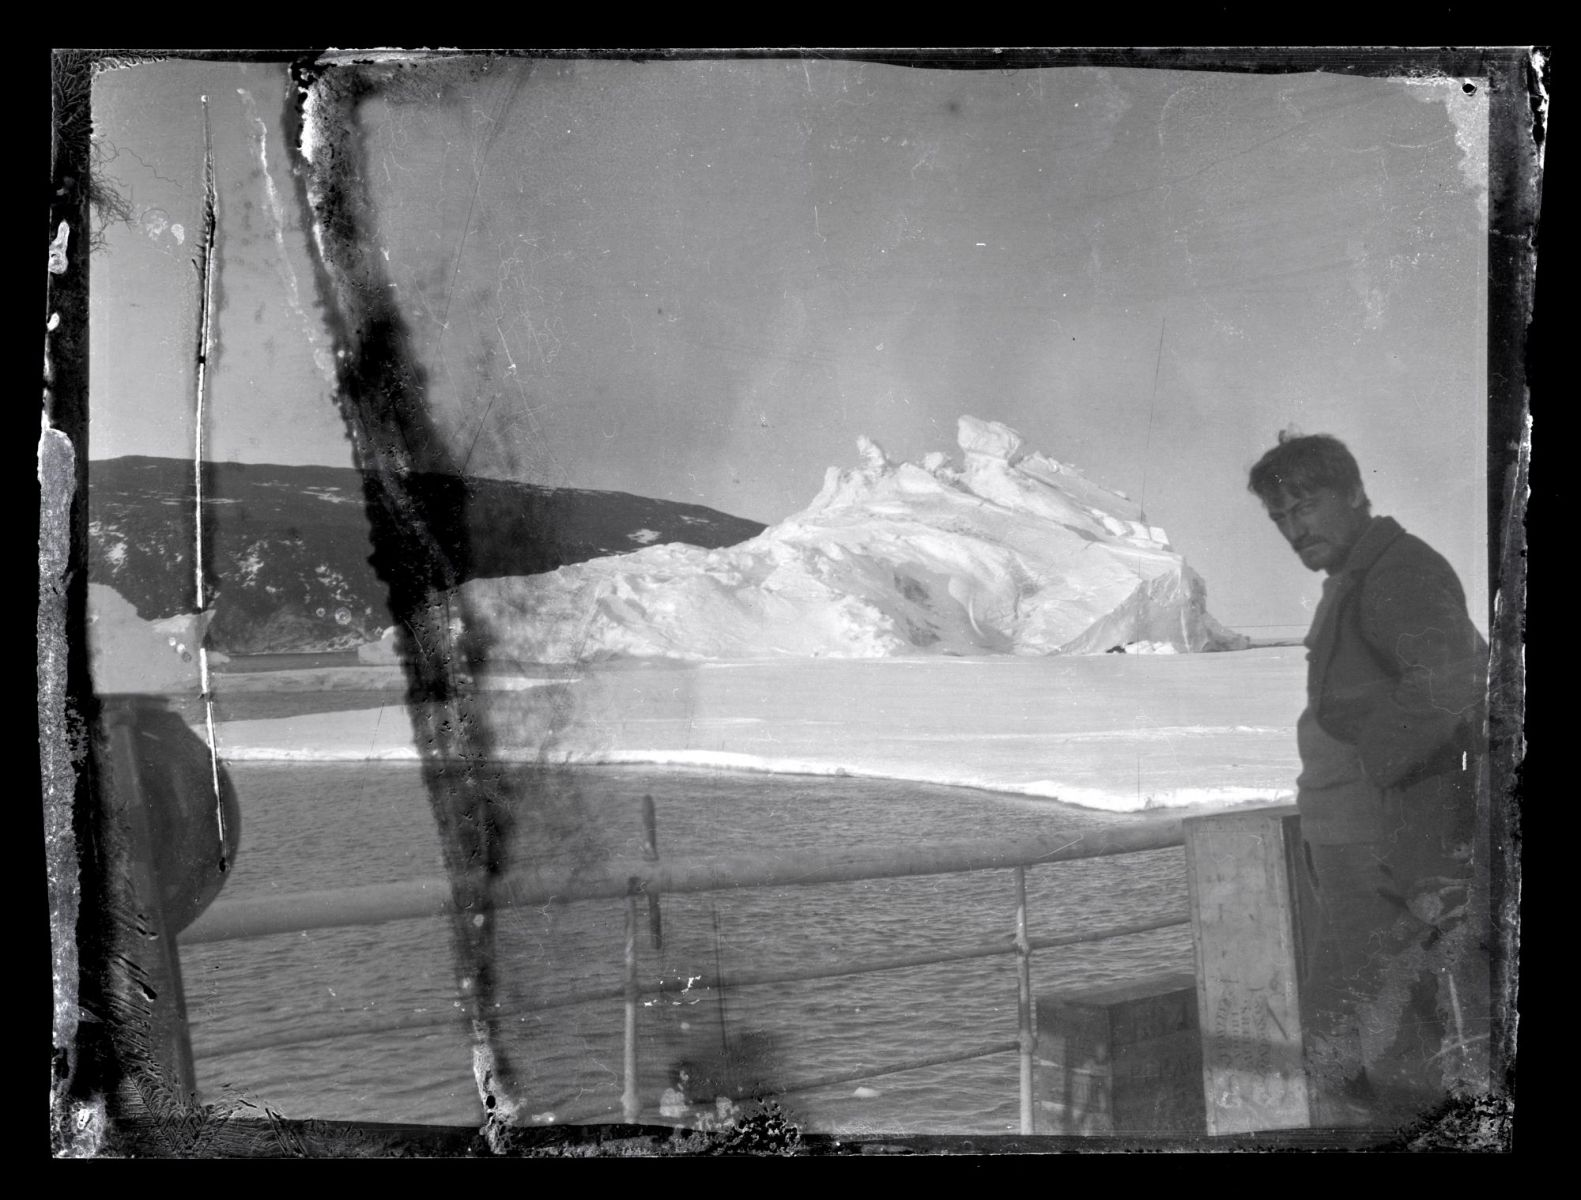 Shackleton discovery